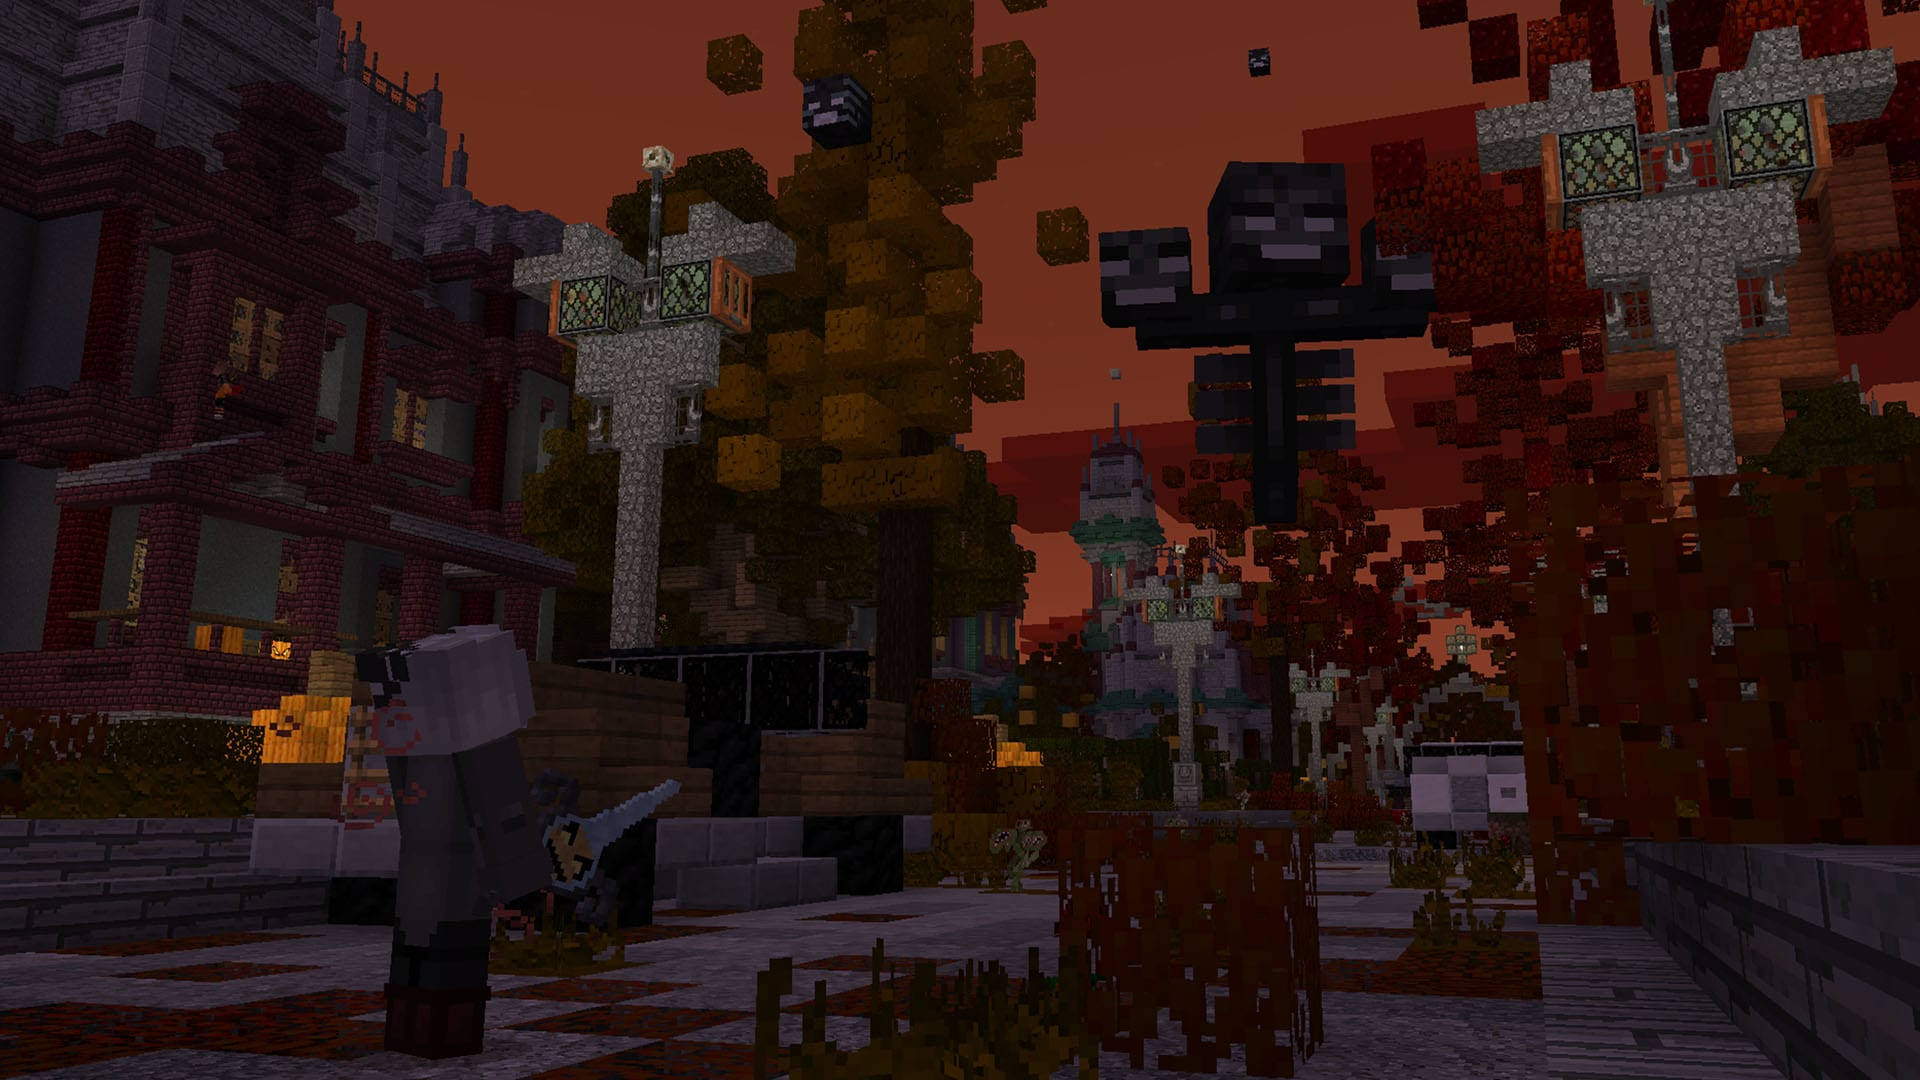 Hollow End Minecraft Aurrora Minecraft Marketplace The Wither